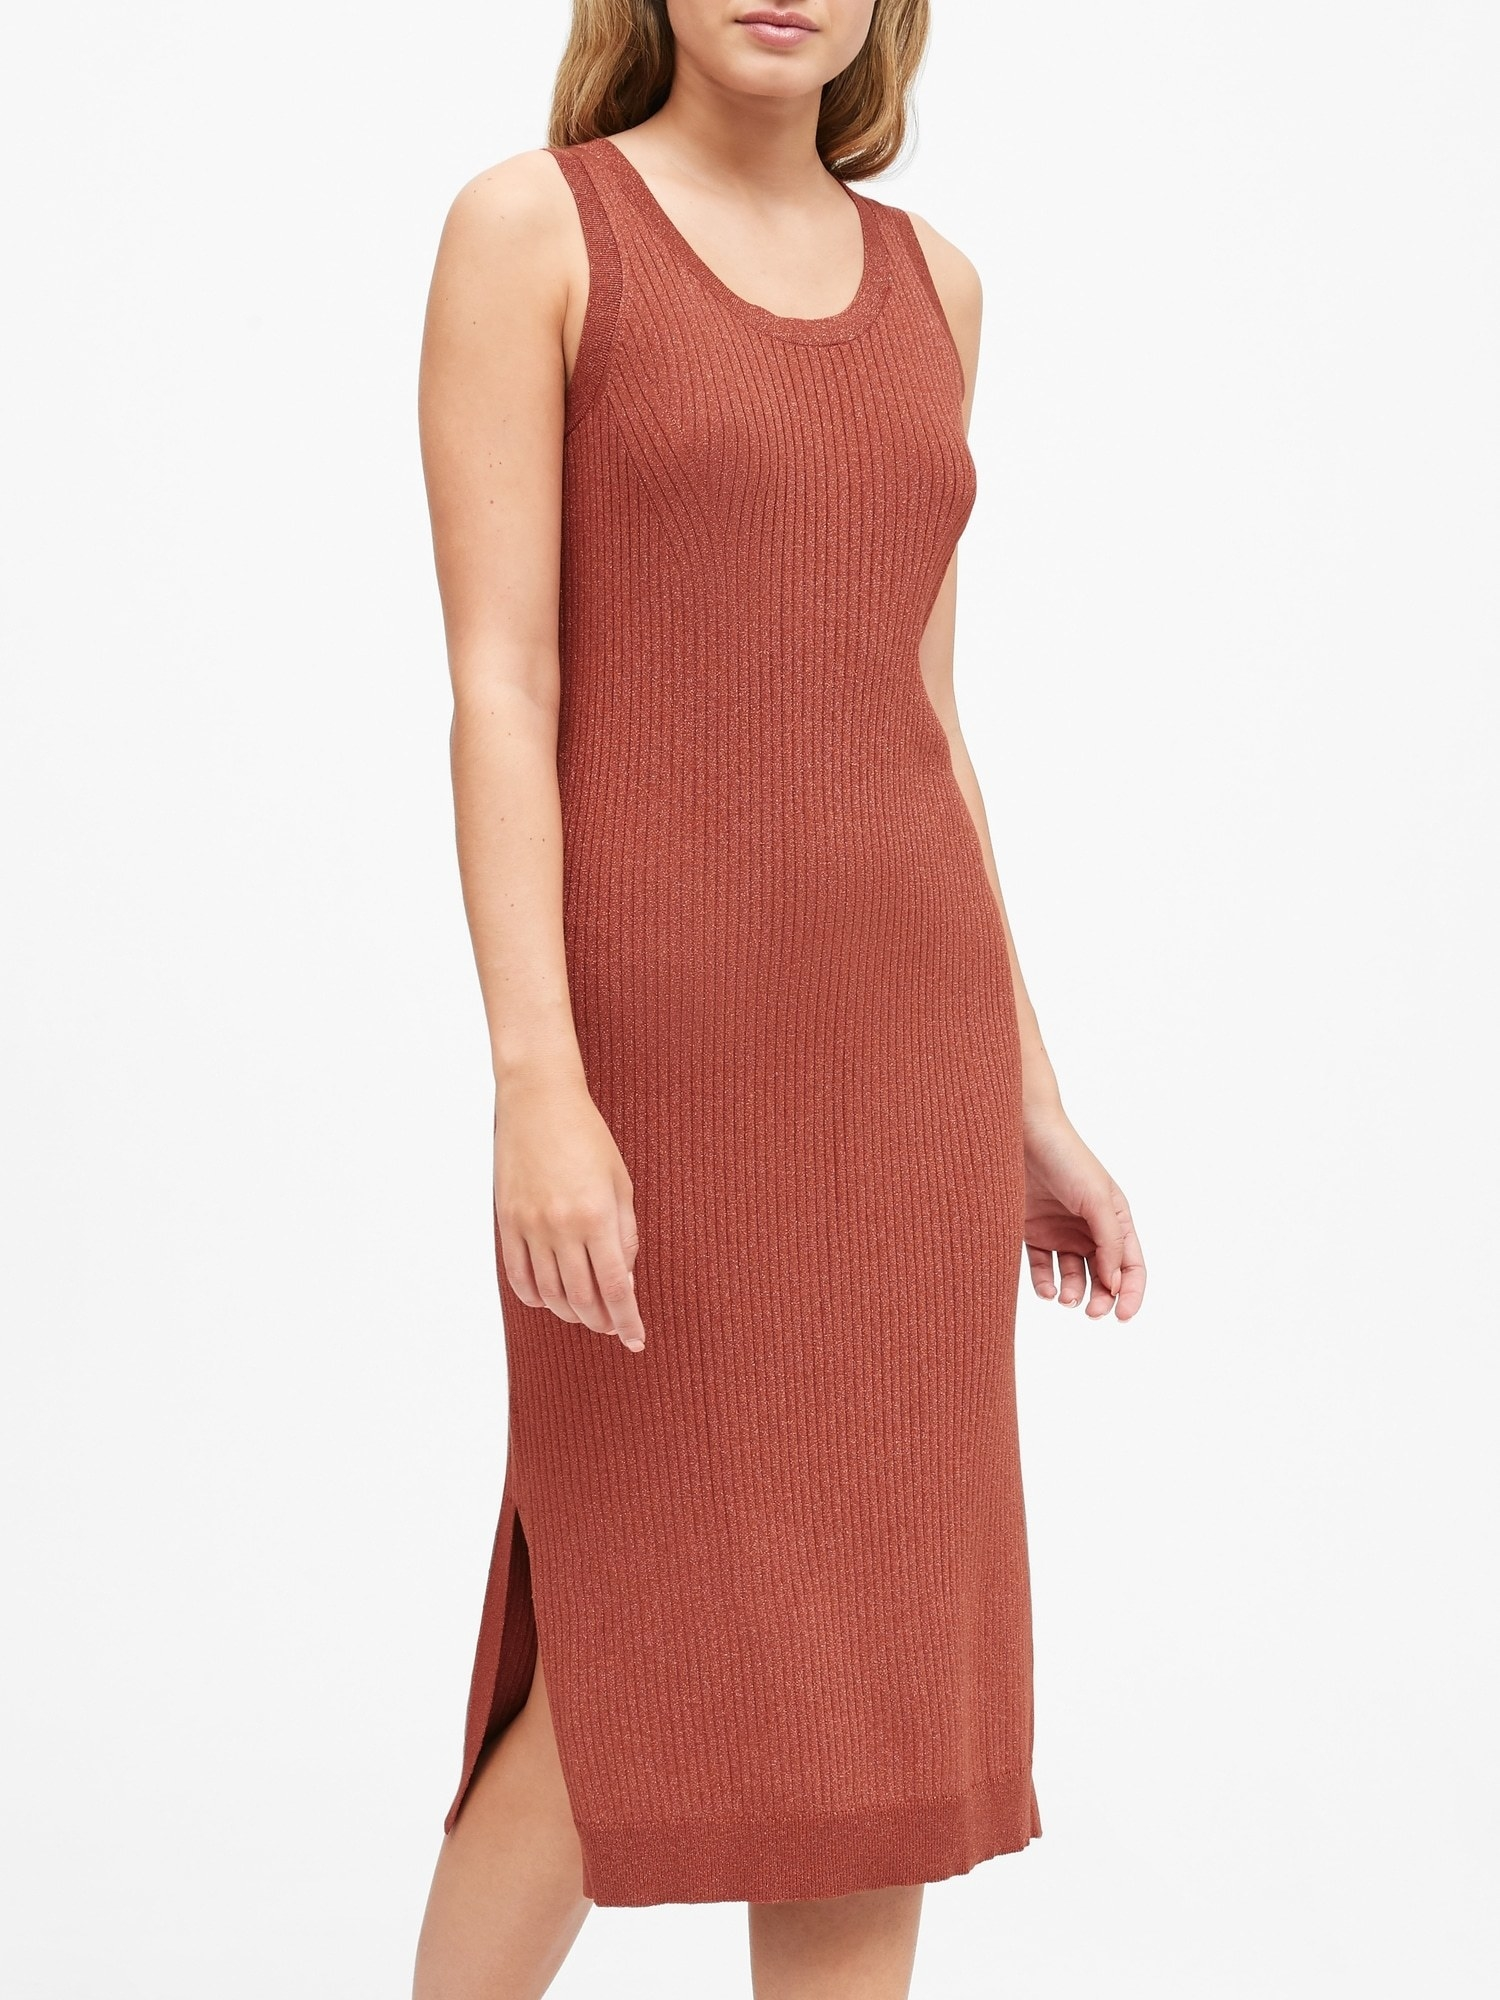 Model wearing the knit dress with small slits up the side in orange